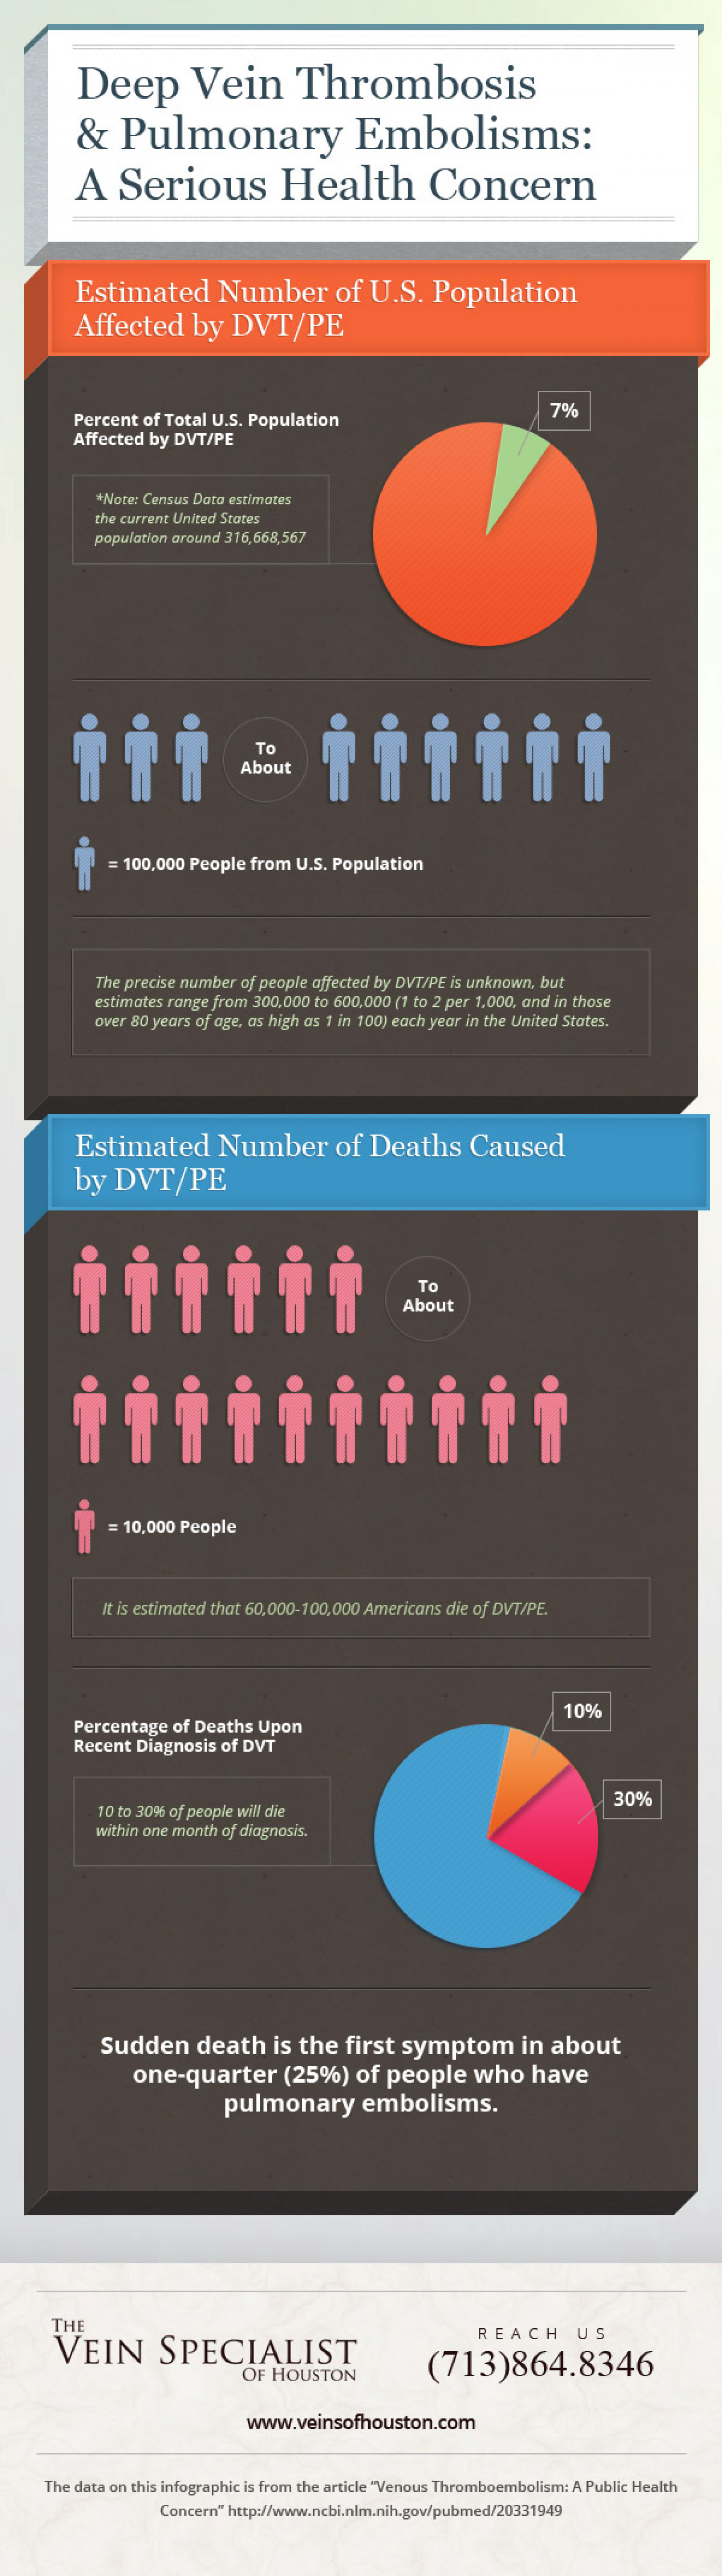 Deep Vein Thrombosis & Pulmonary Embolisms: A Serious Health Concern Infographic